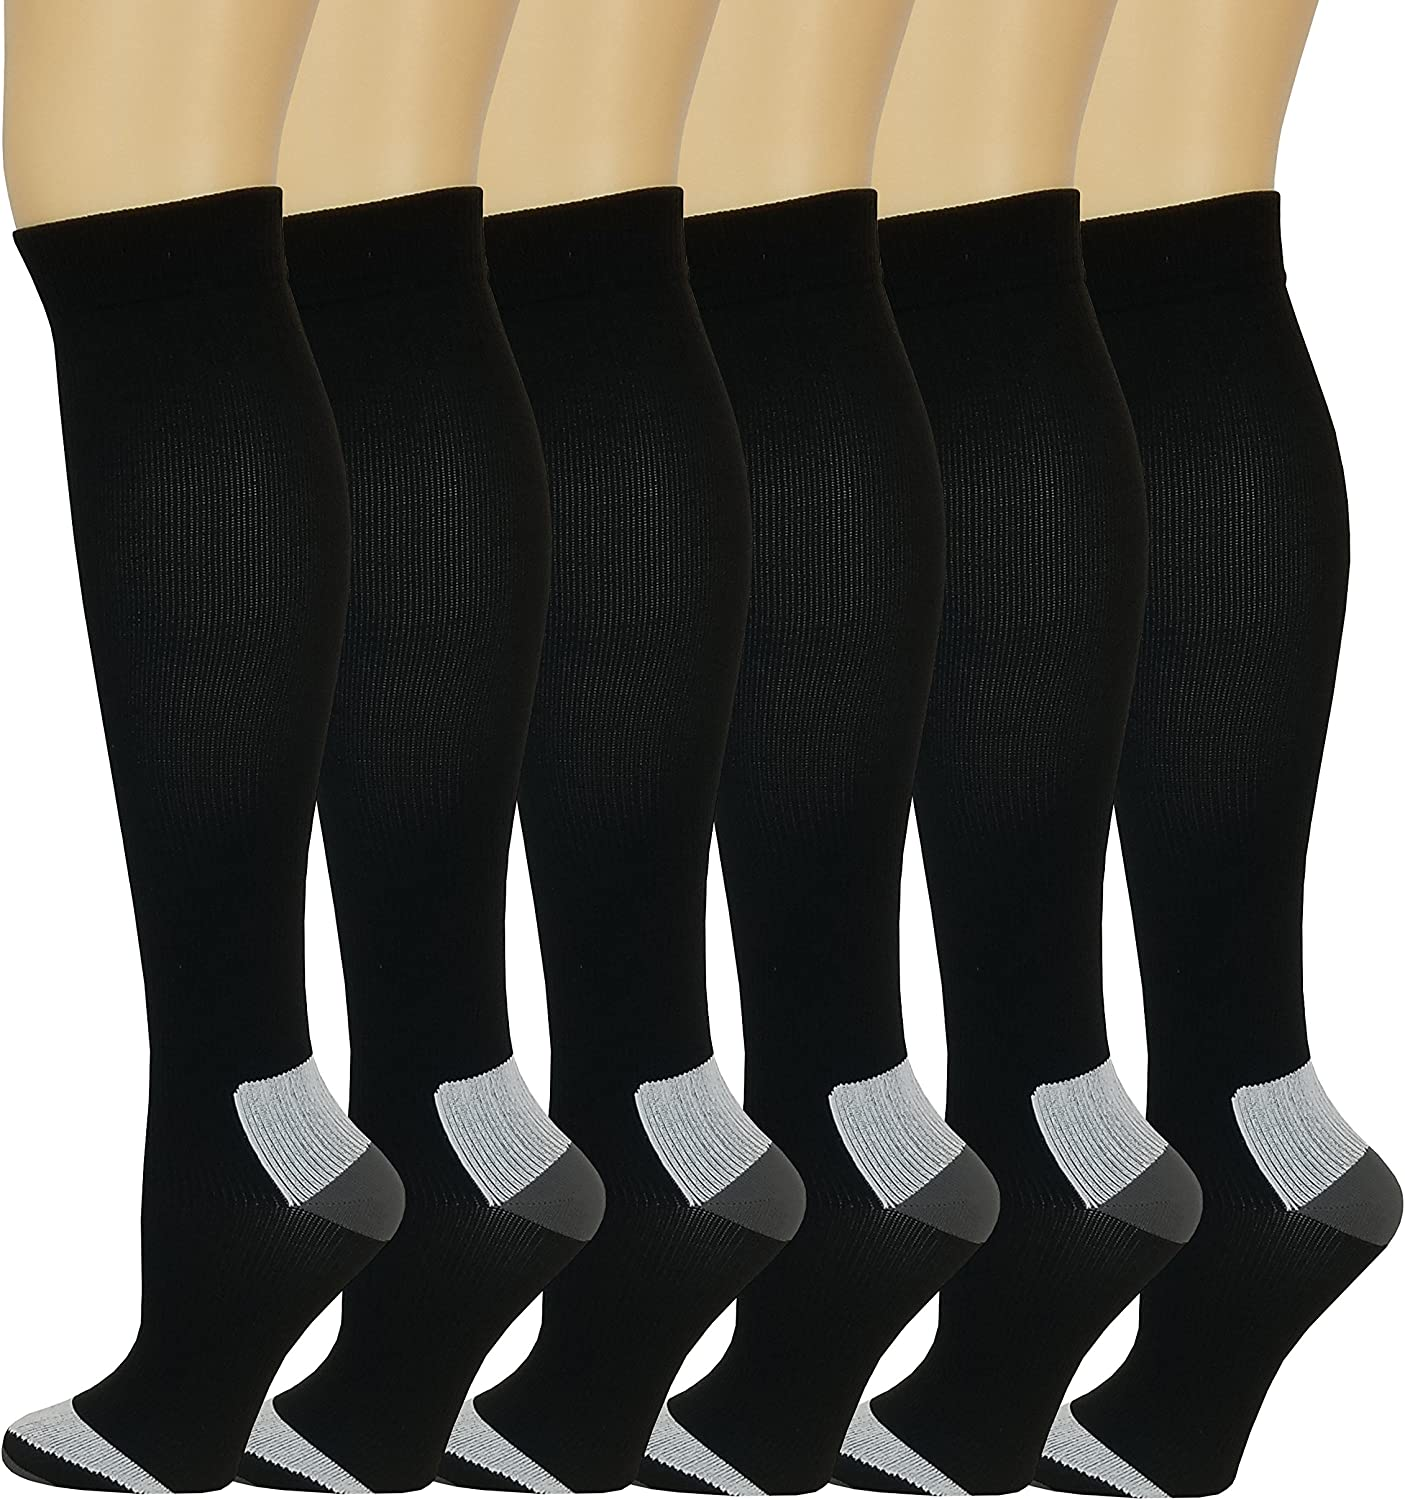 Different Touch 6 Pairs Pack Women Travelers Anti-Fatigue Graduated Compression Knee High Socks 9-11